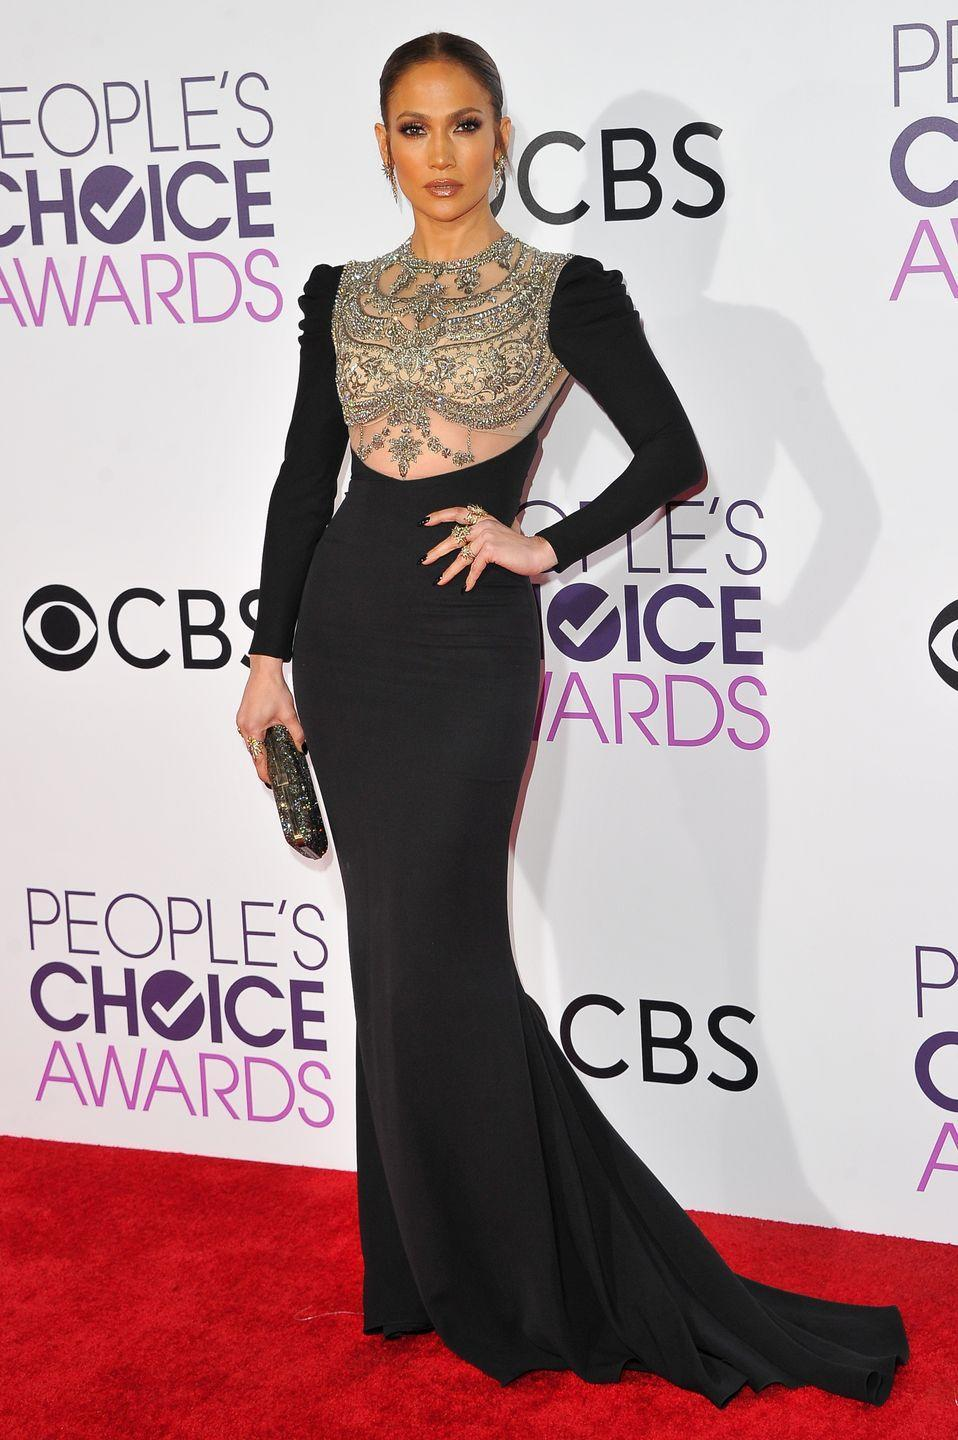 <p>Even a long-sleeved black gown will be jazzed up a bit if worn by Lopez. She wore this black Reem Acra dress with a beaded bodice detail in 2017.</p>